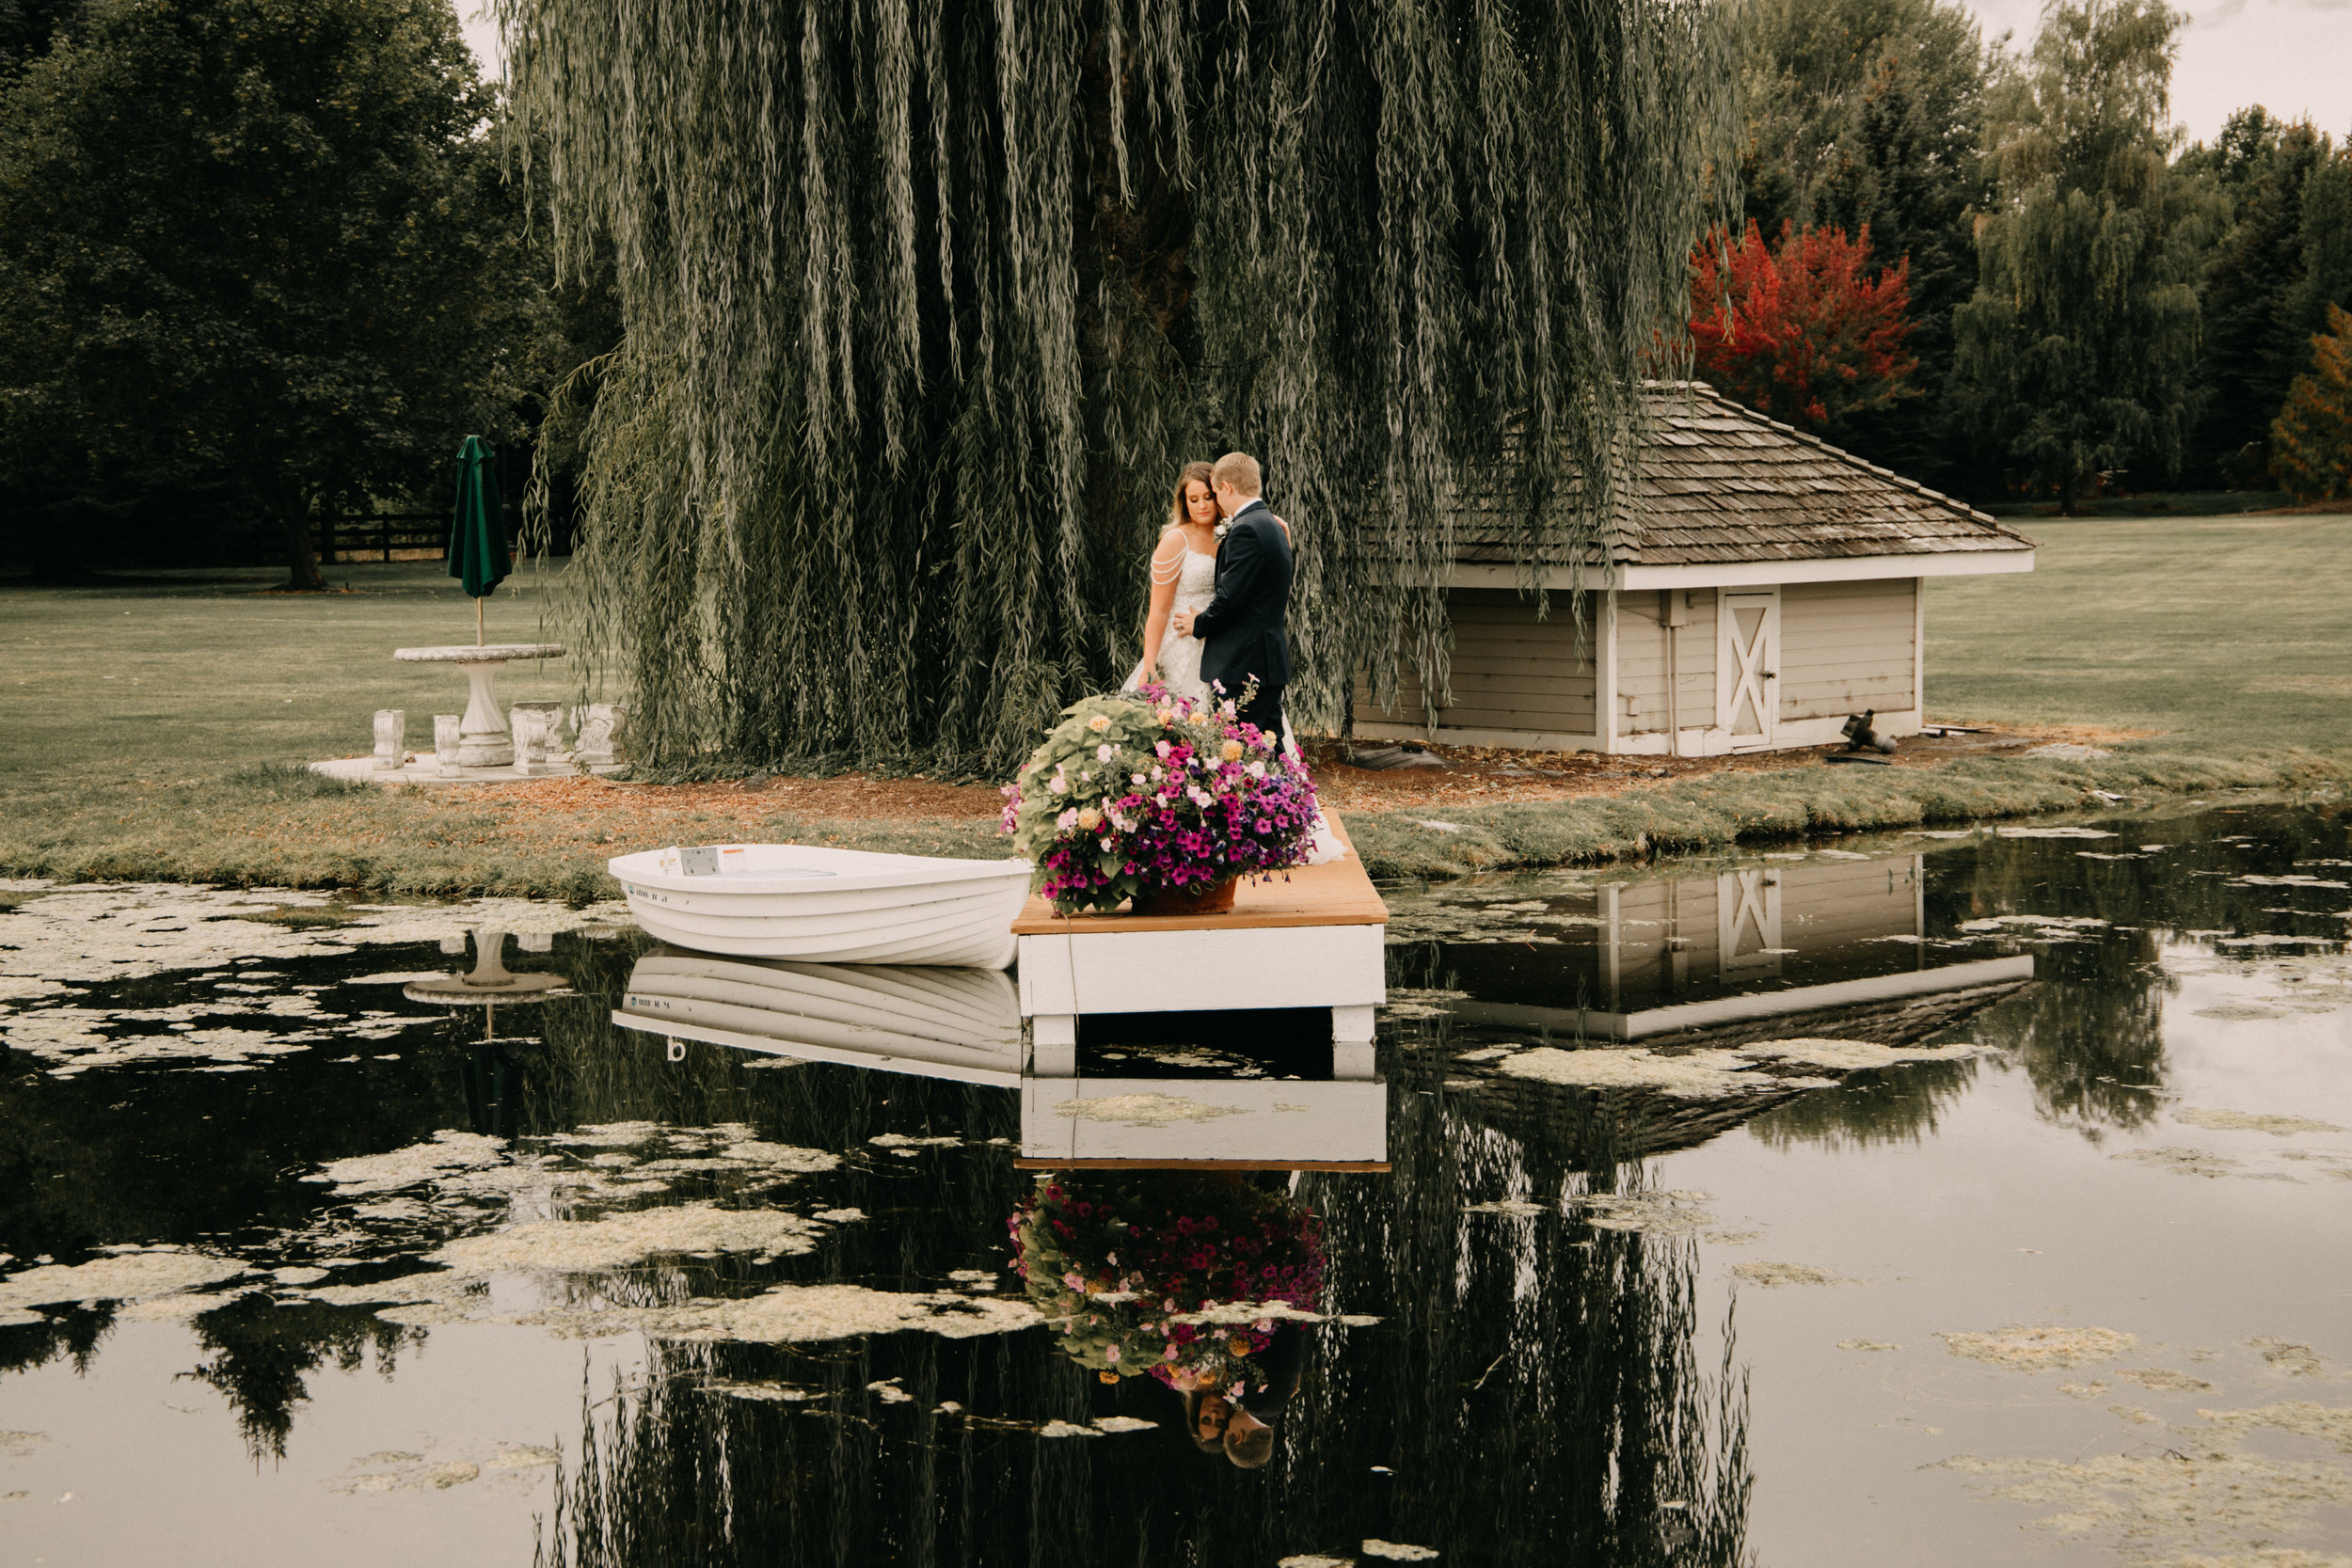 a fairytale wedding - yakima, washington